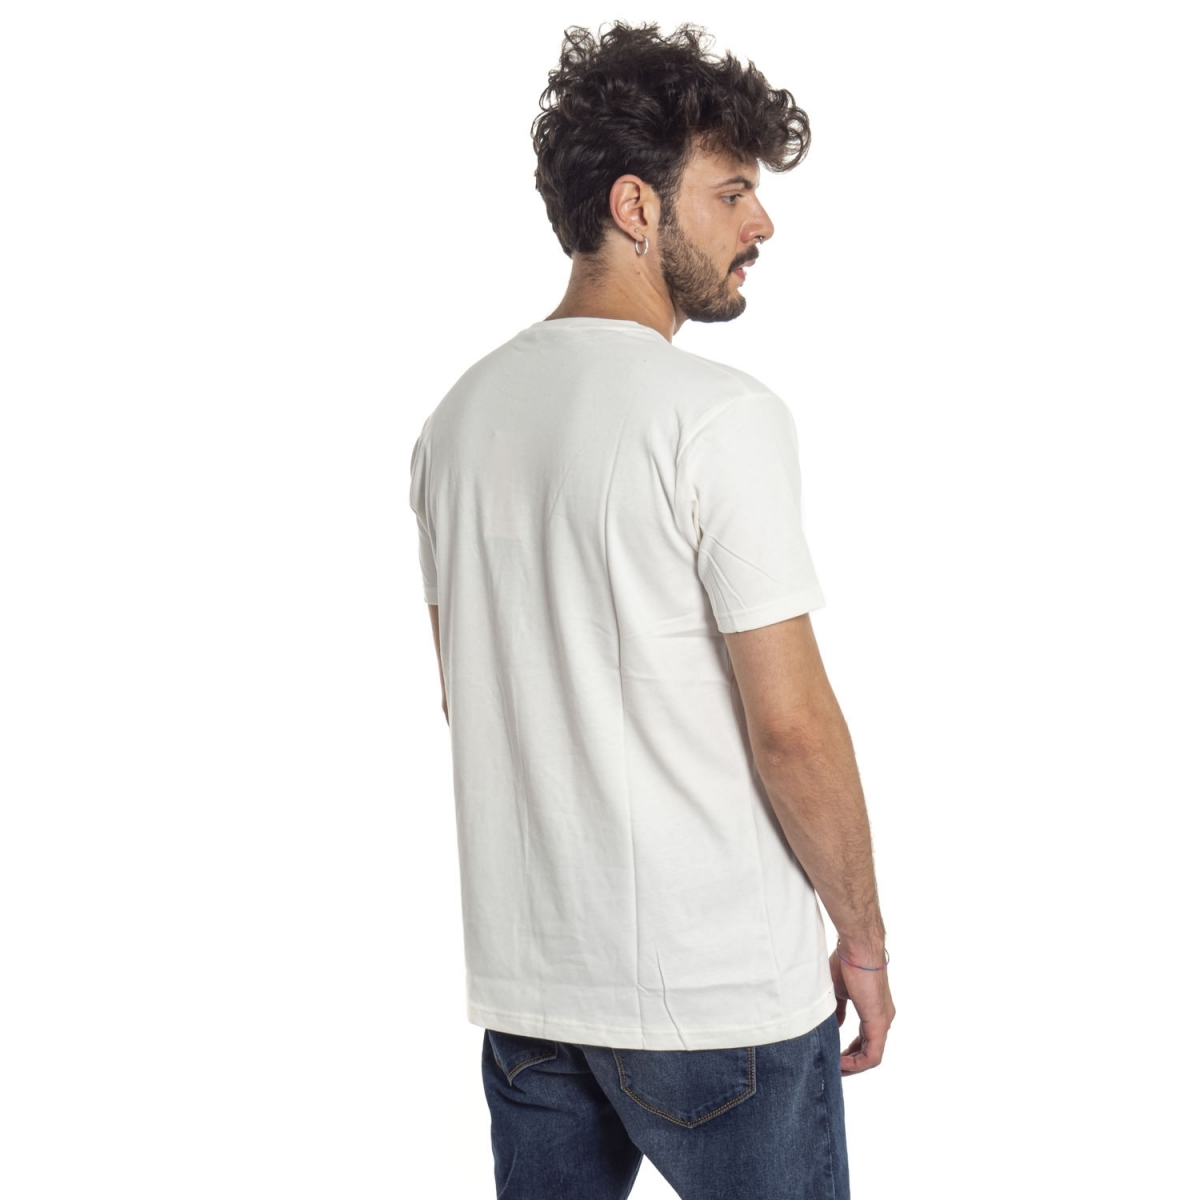 vêtements T-shirt homme LPX16-34 BIANCO Cafedelmar Shop